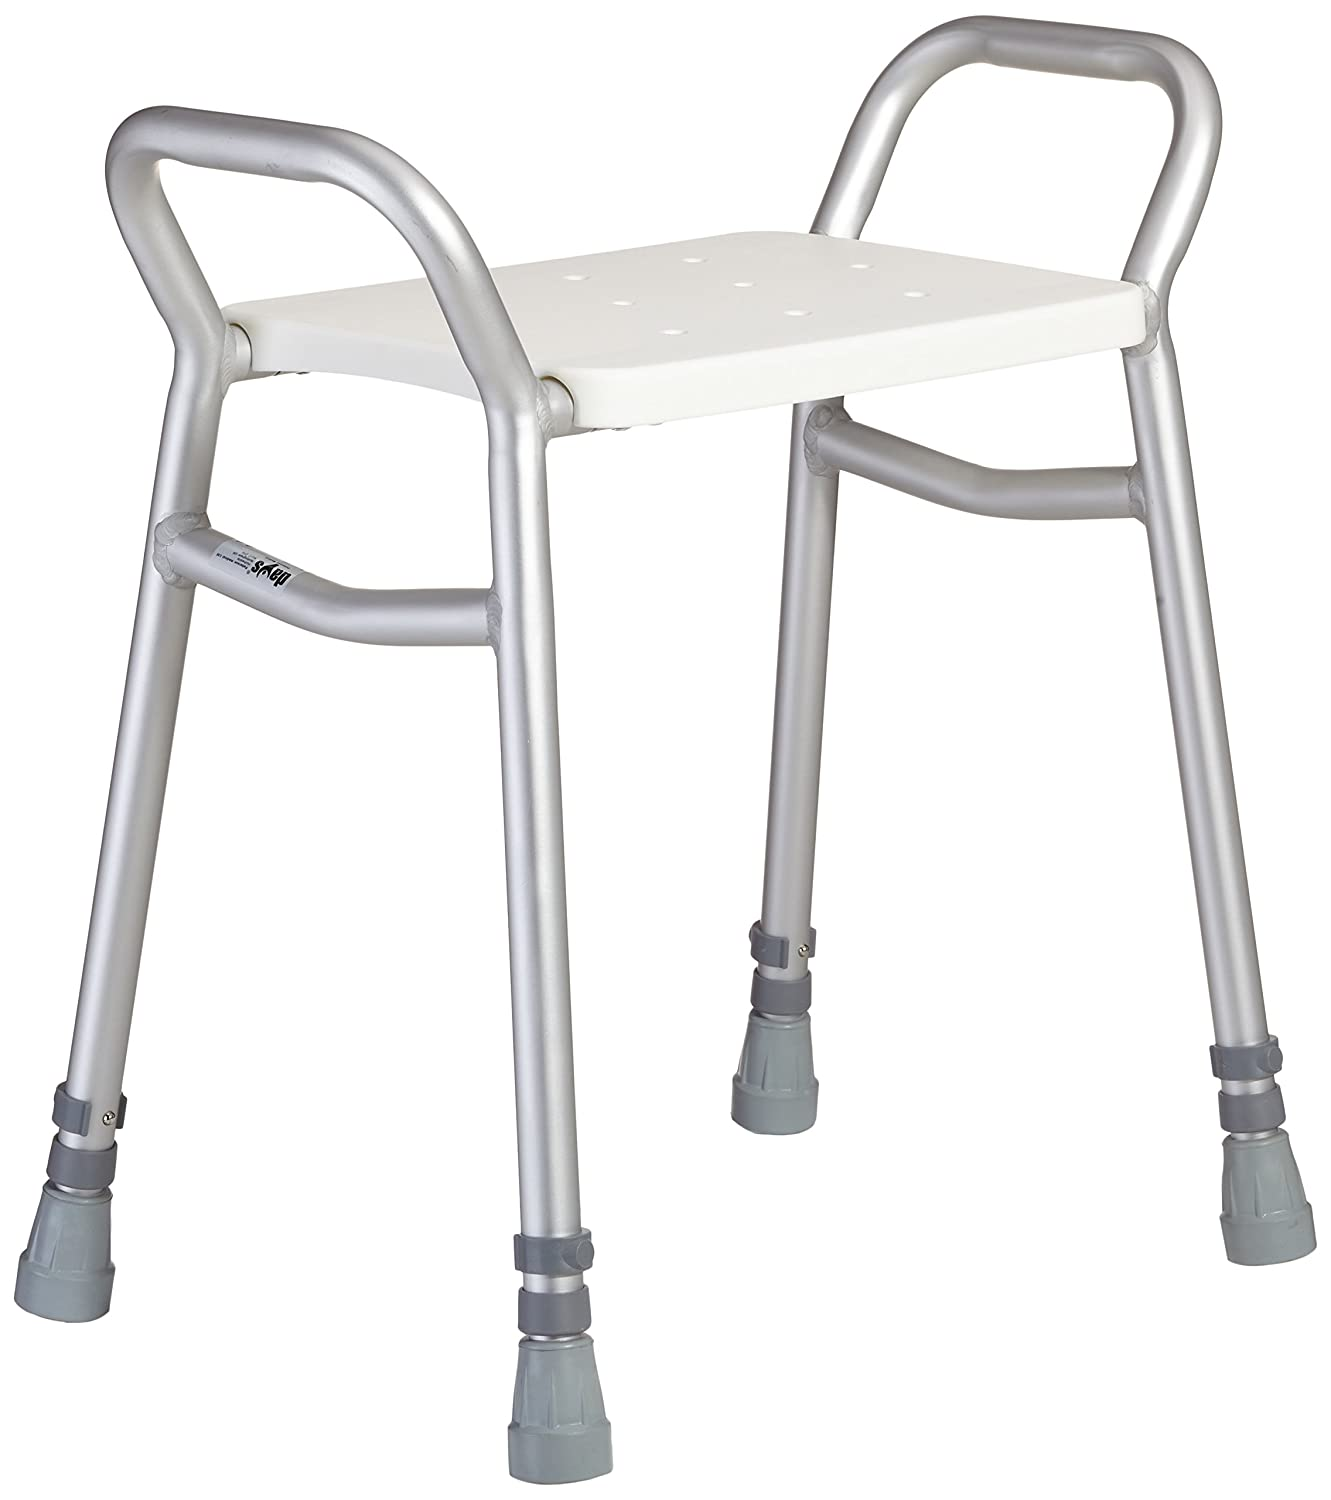 Shower & Bath Stools | Amazon.co.uk